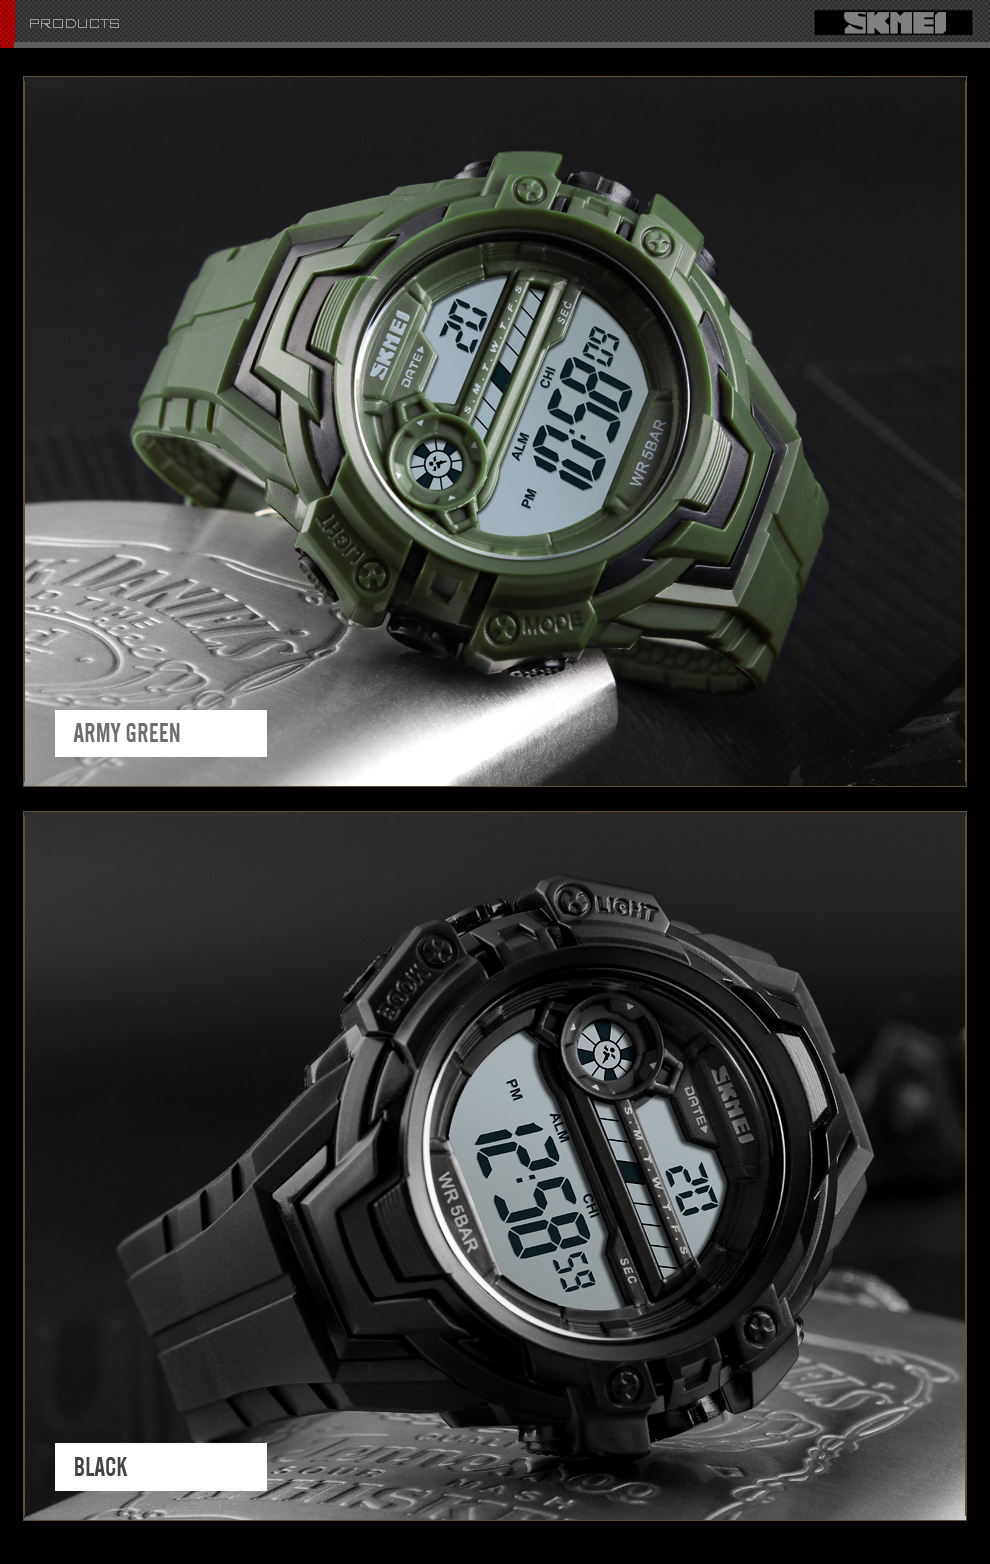 SKMEI 1383 best selling watches men fashion digital origin relojes chinos baratos jam tangan pria